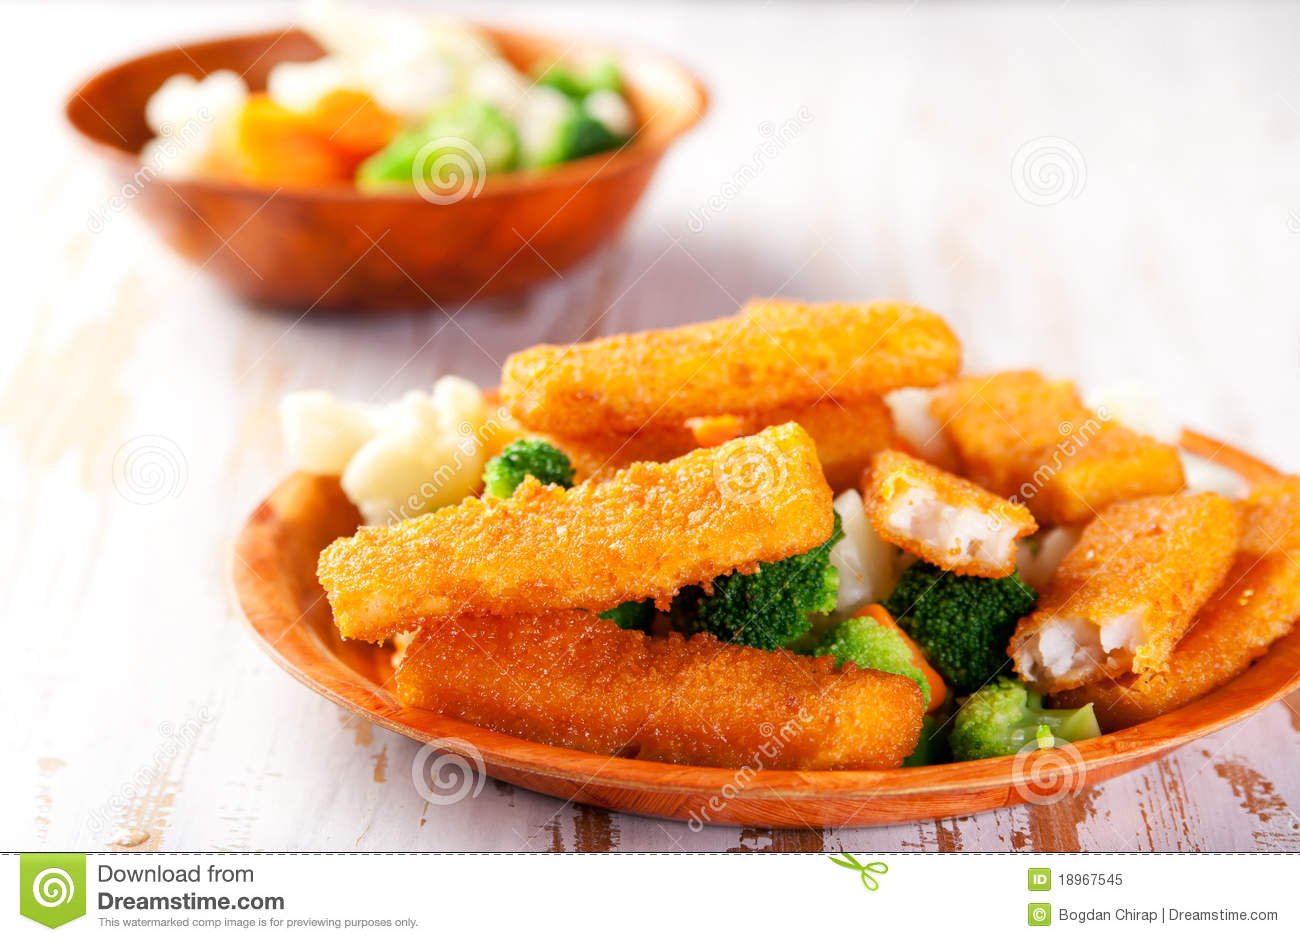 Fish fingers with vegetables side dish royalty free stock for What sides go with fish